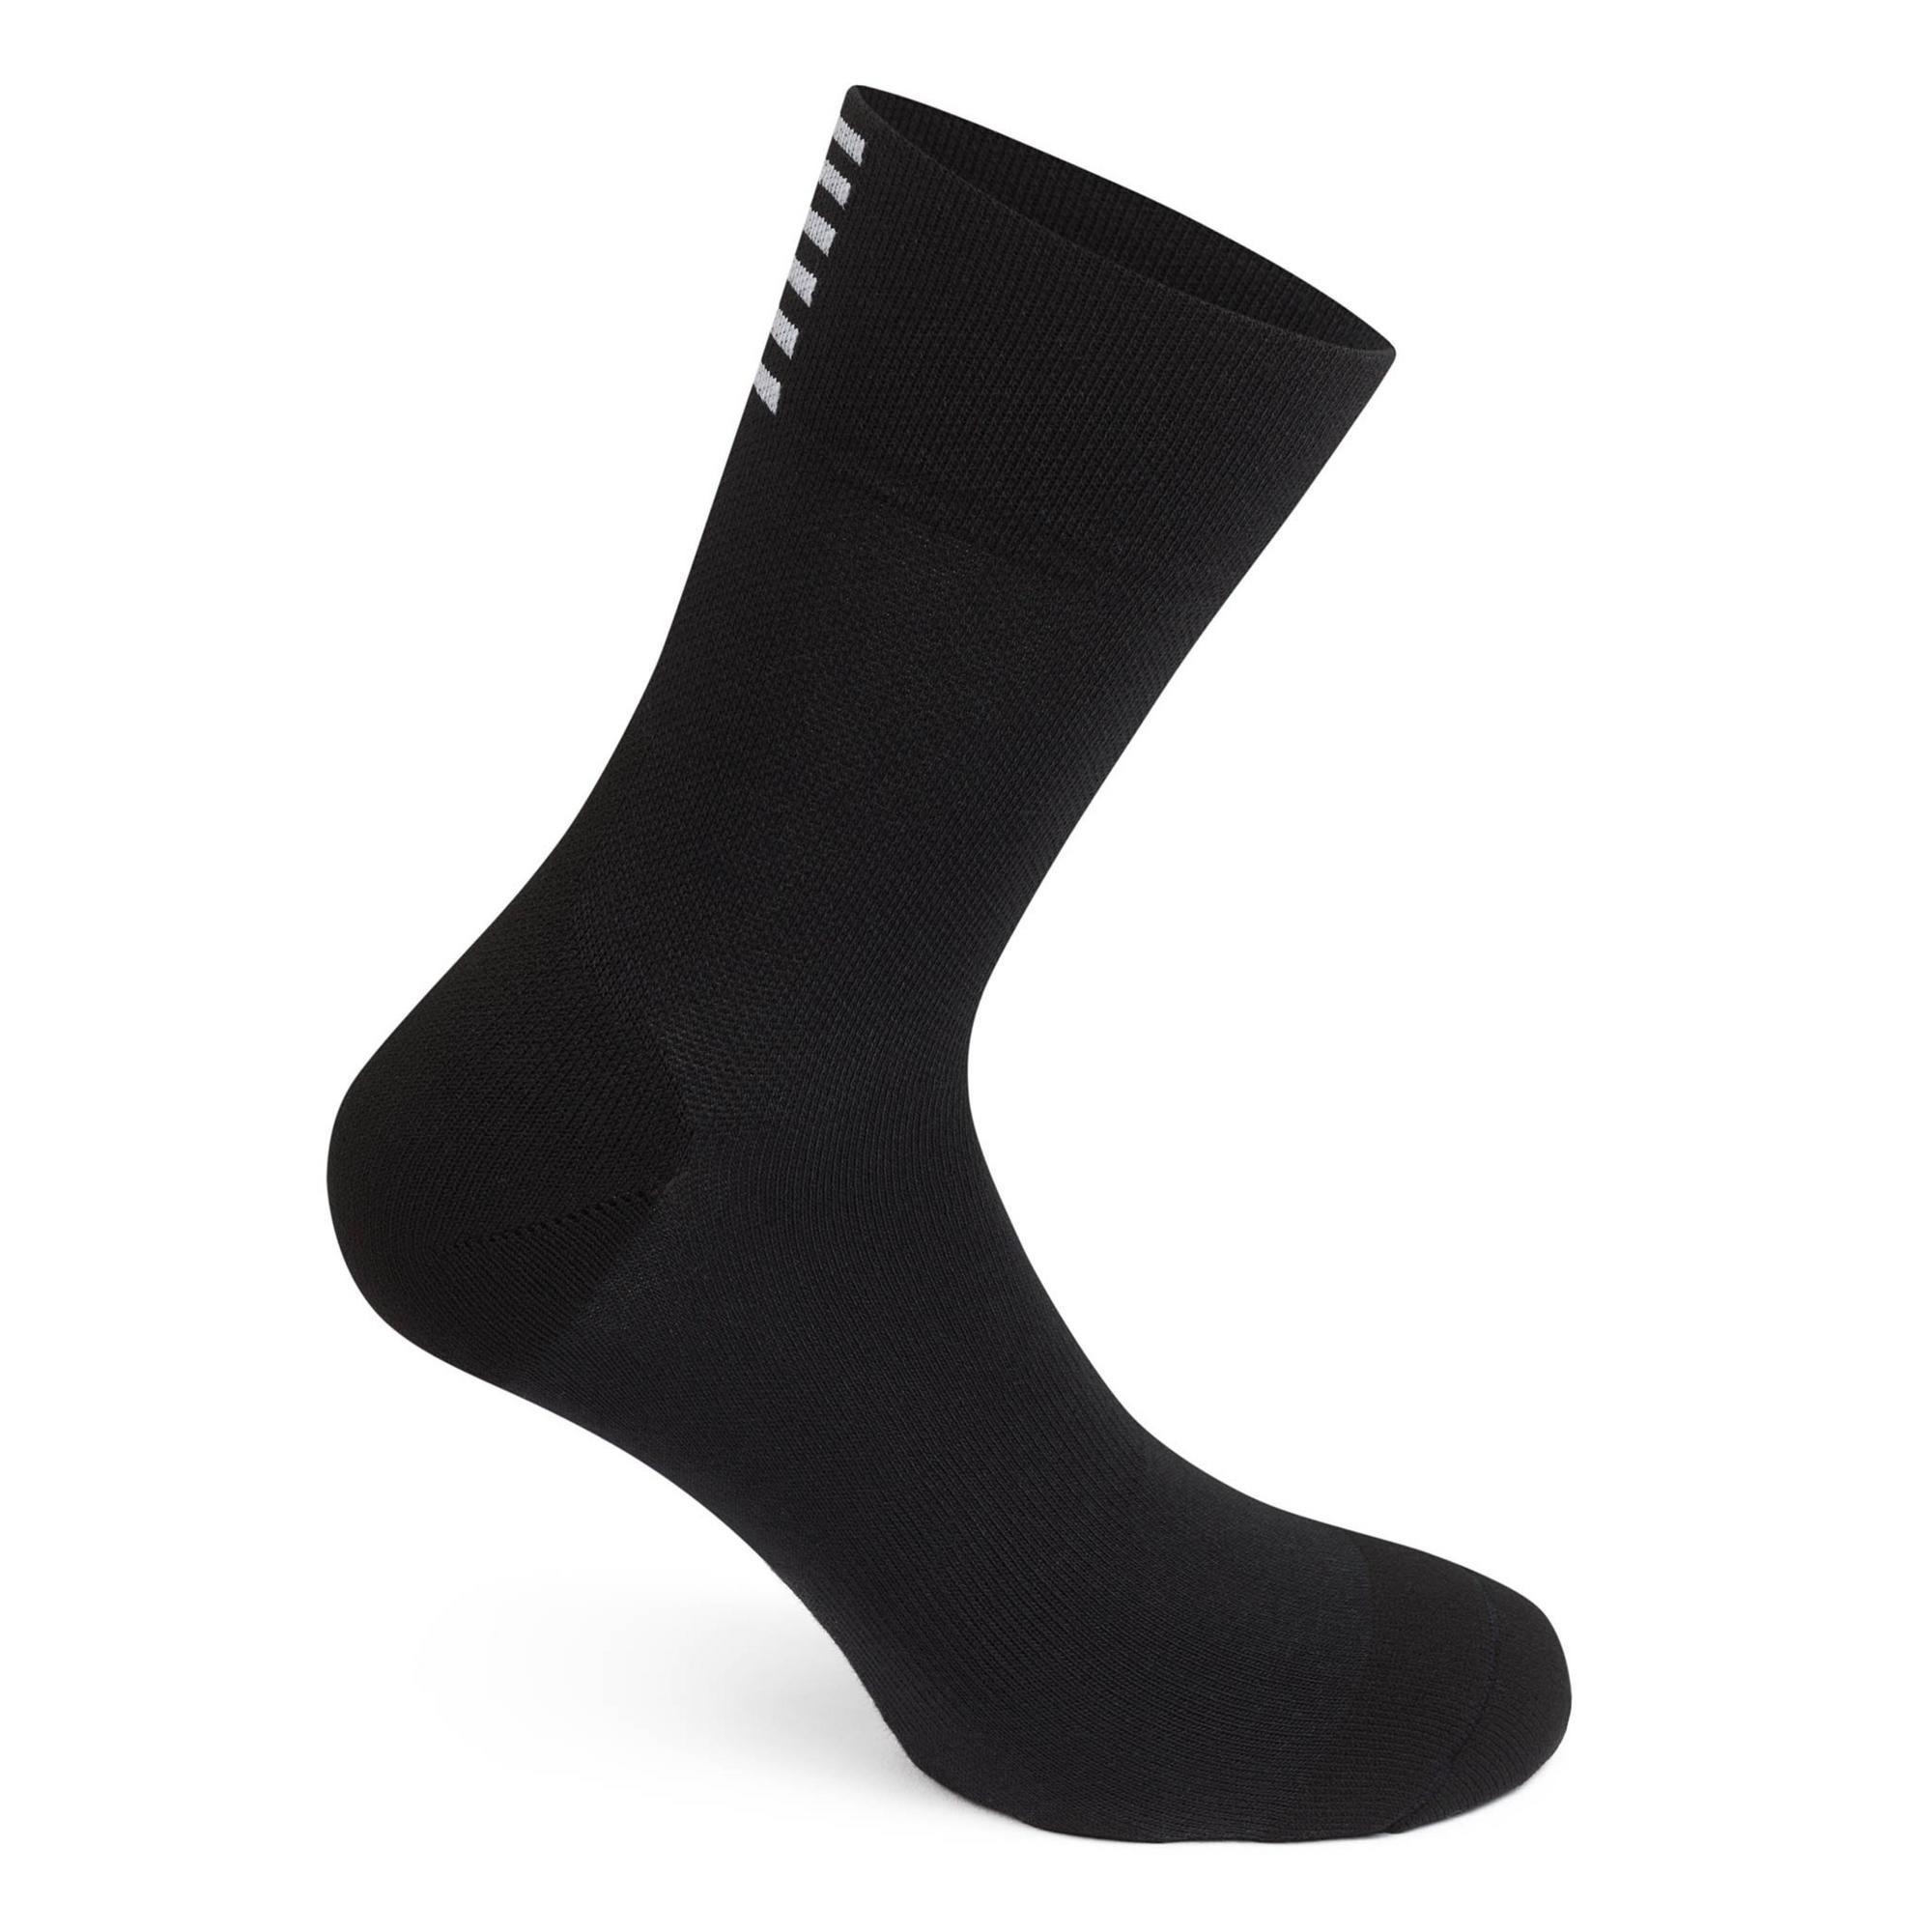 Rapha Pro Team Winter Socks